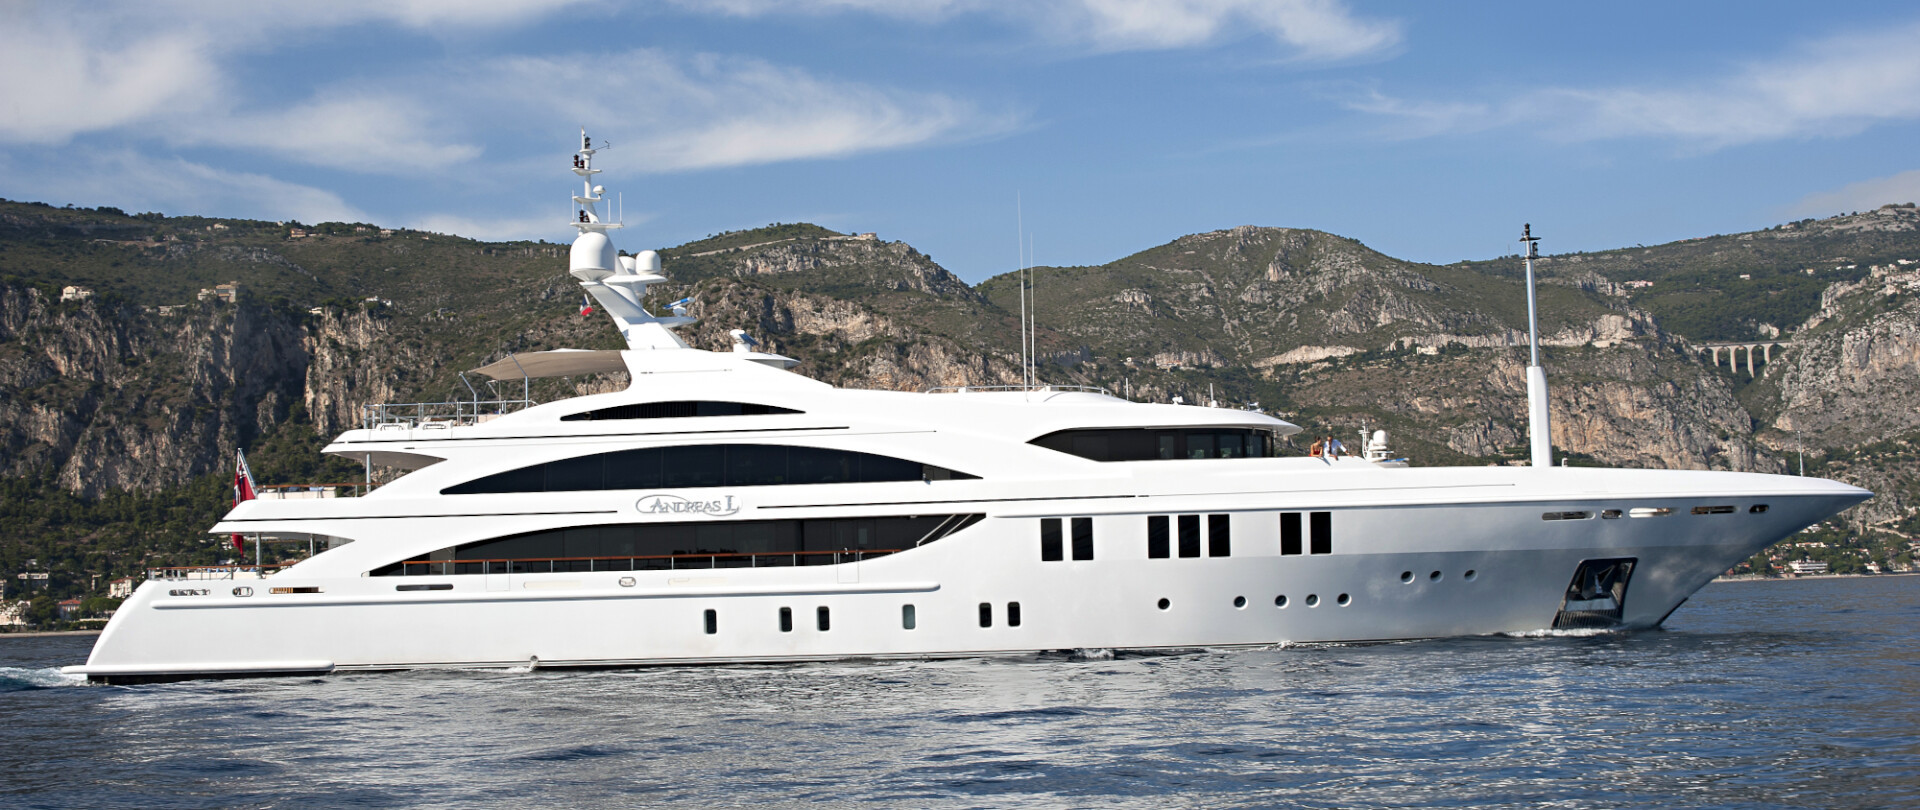 Andreas L, new CA for sale | Attending MYS 2019 photo 1